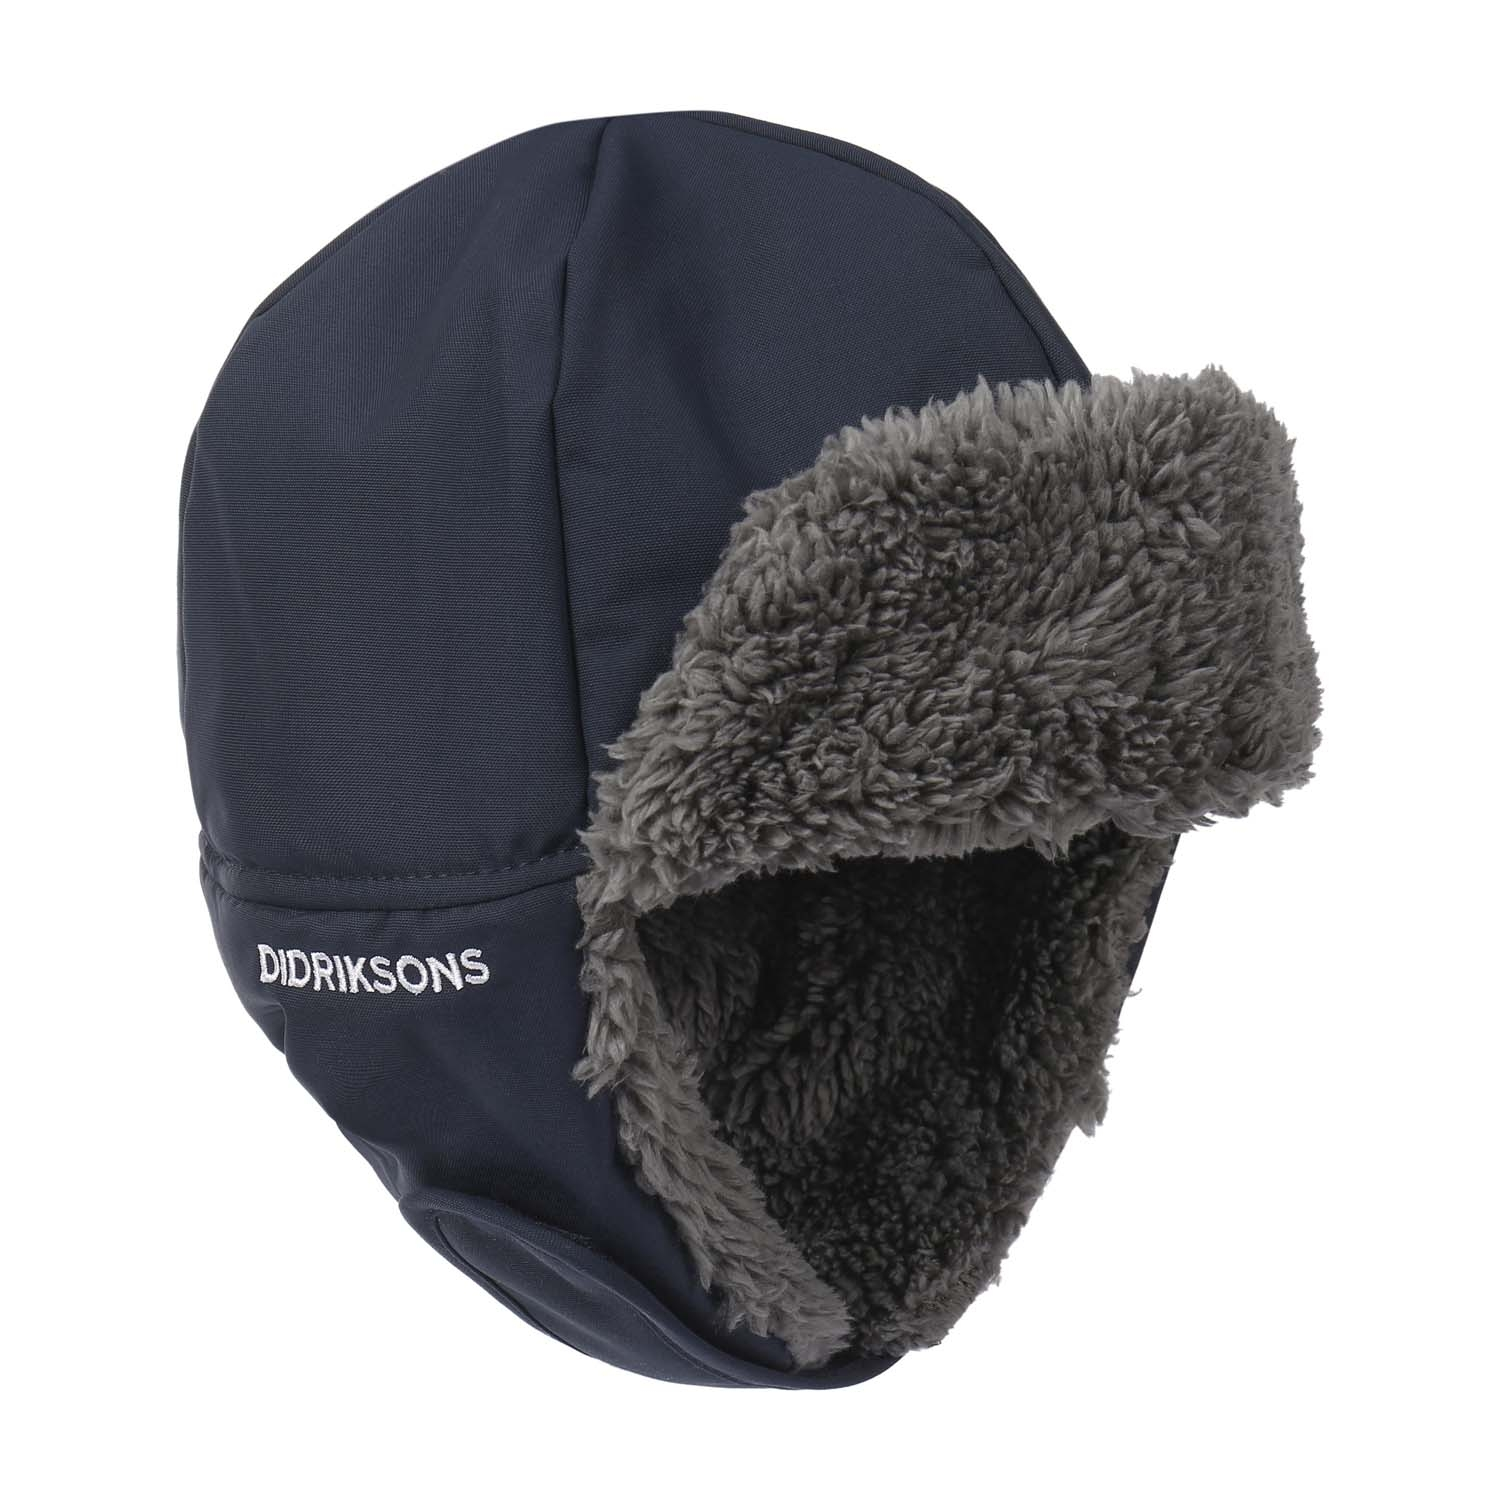 Didriksons Biggles Hat Navy 2021